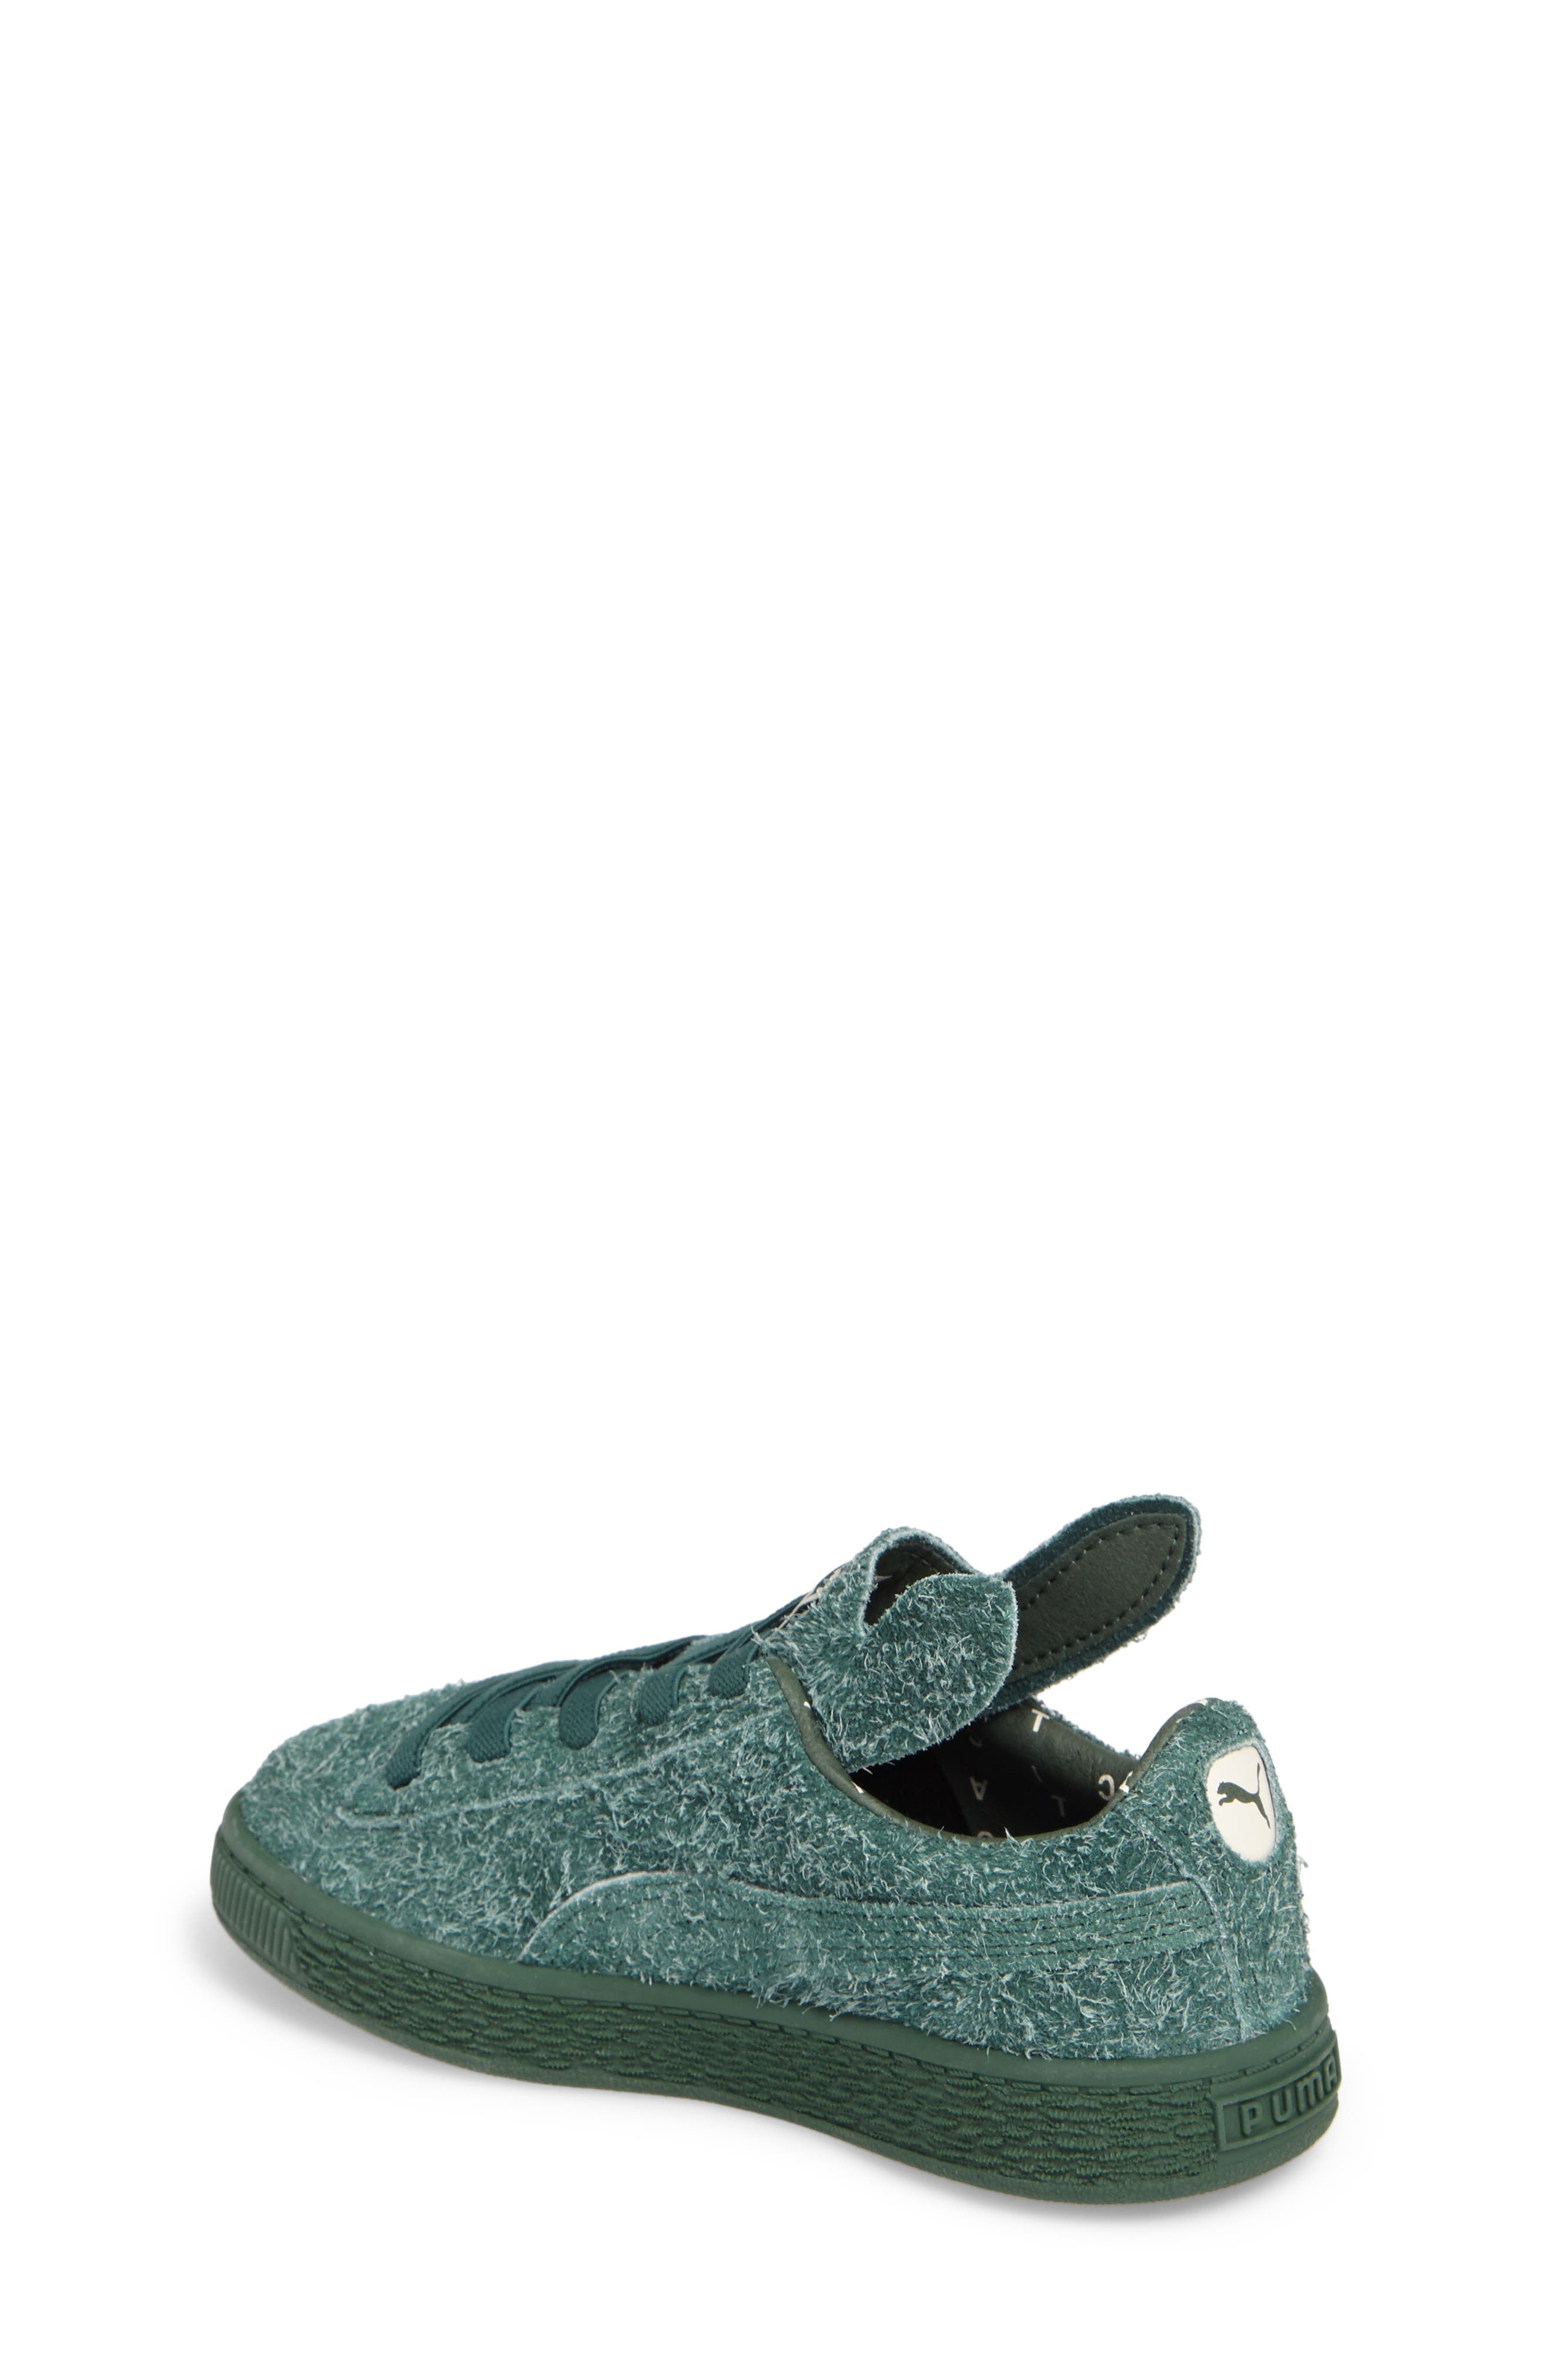 Alternate Image 2  - PUMA x tinycottons Basket Furry Sneaker (Baby, Walker, Toddler, Little Kid & Big Kid)